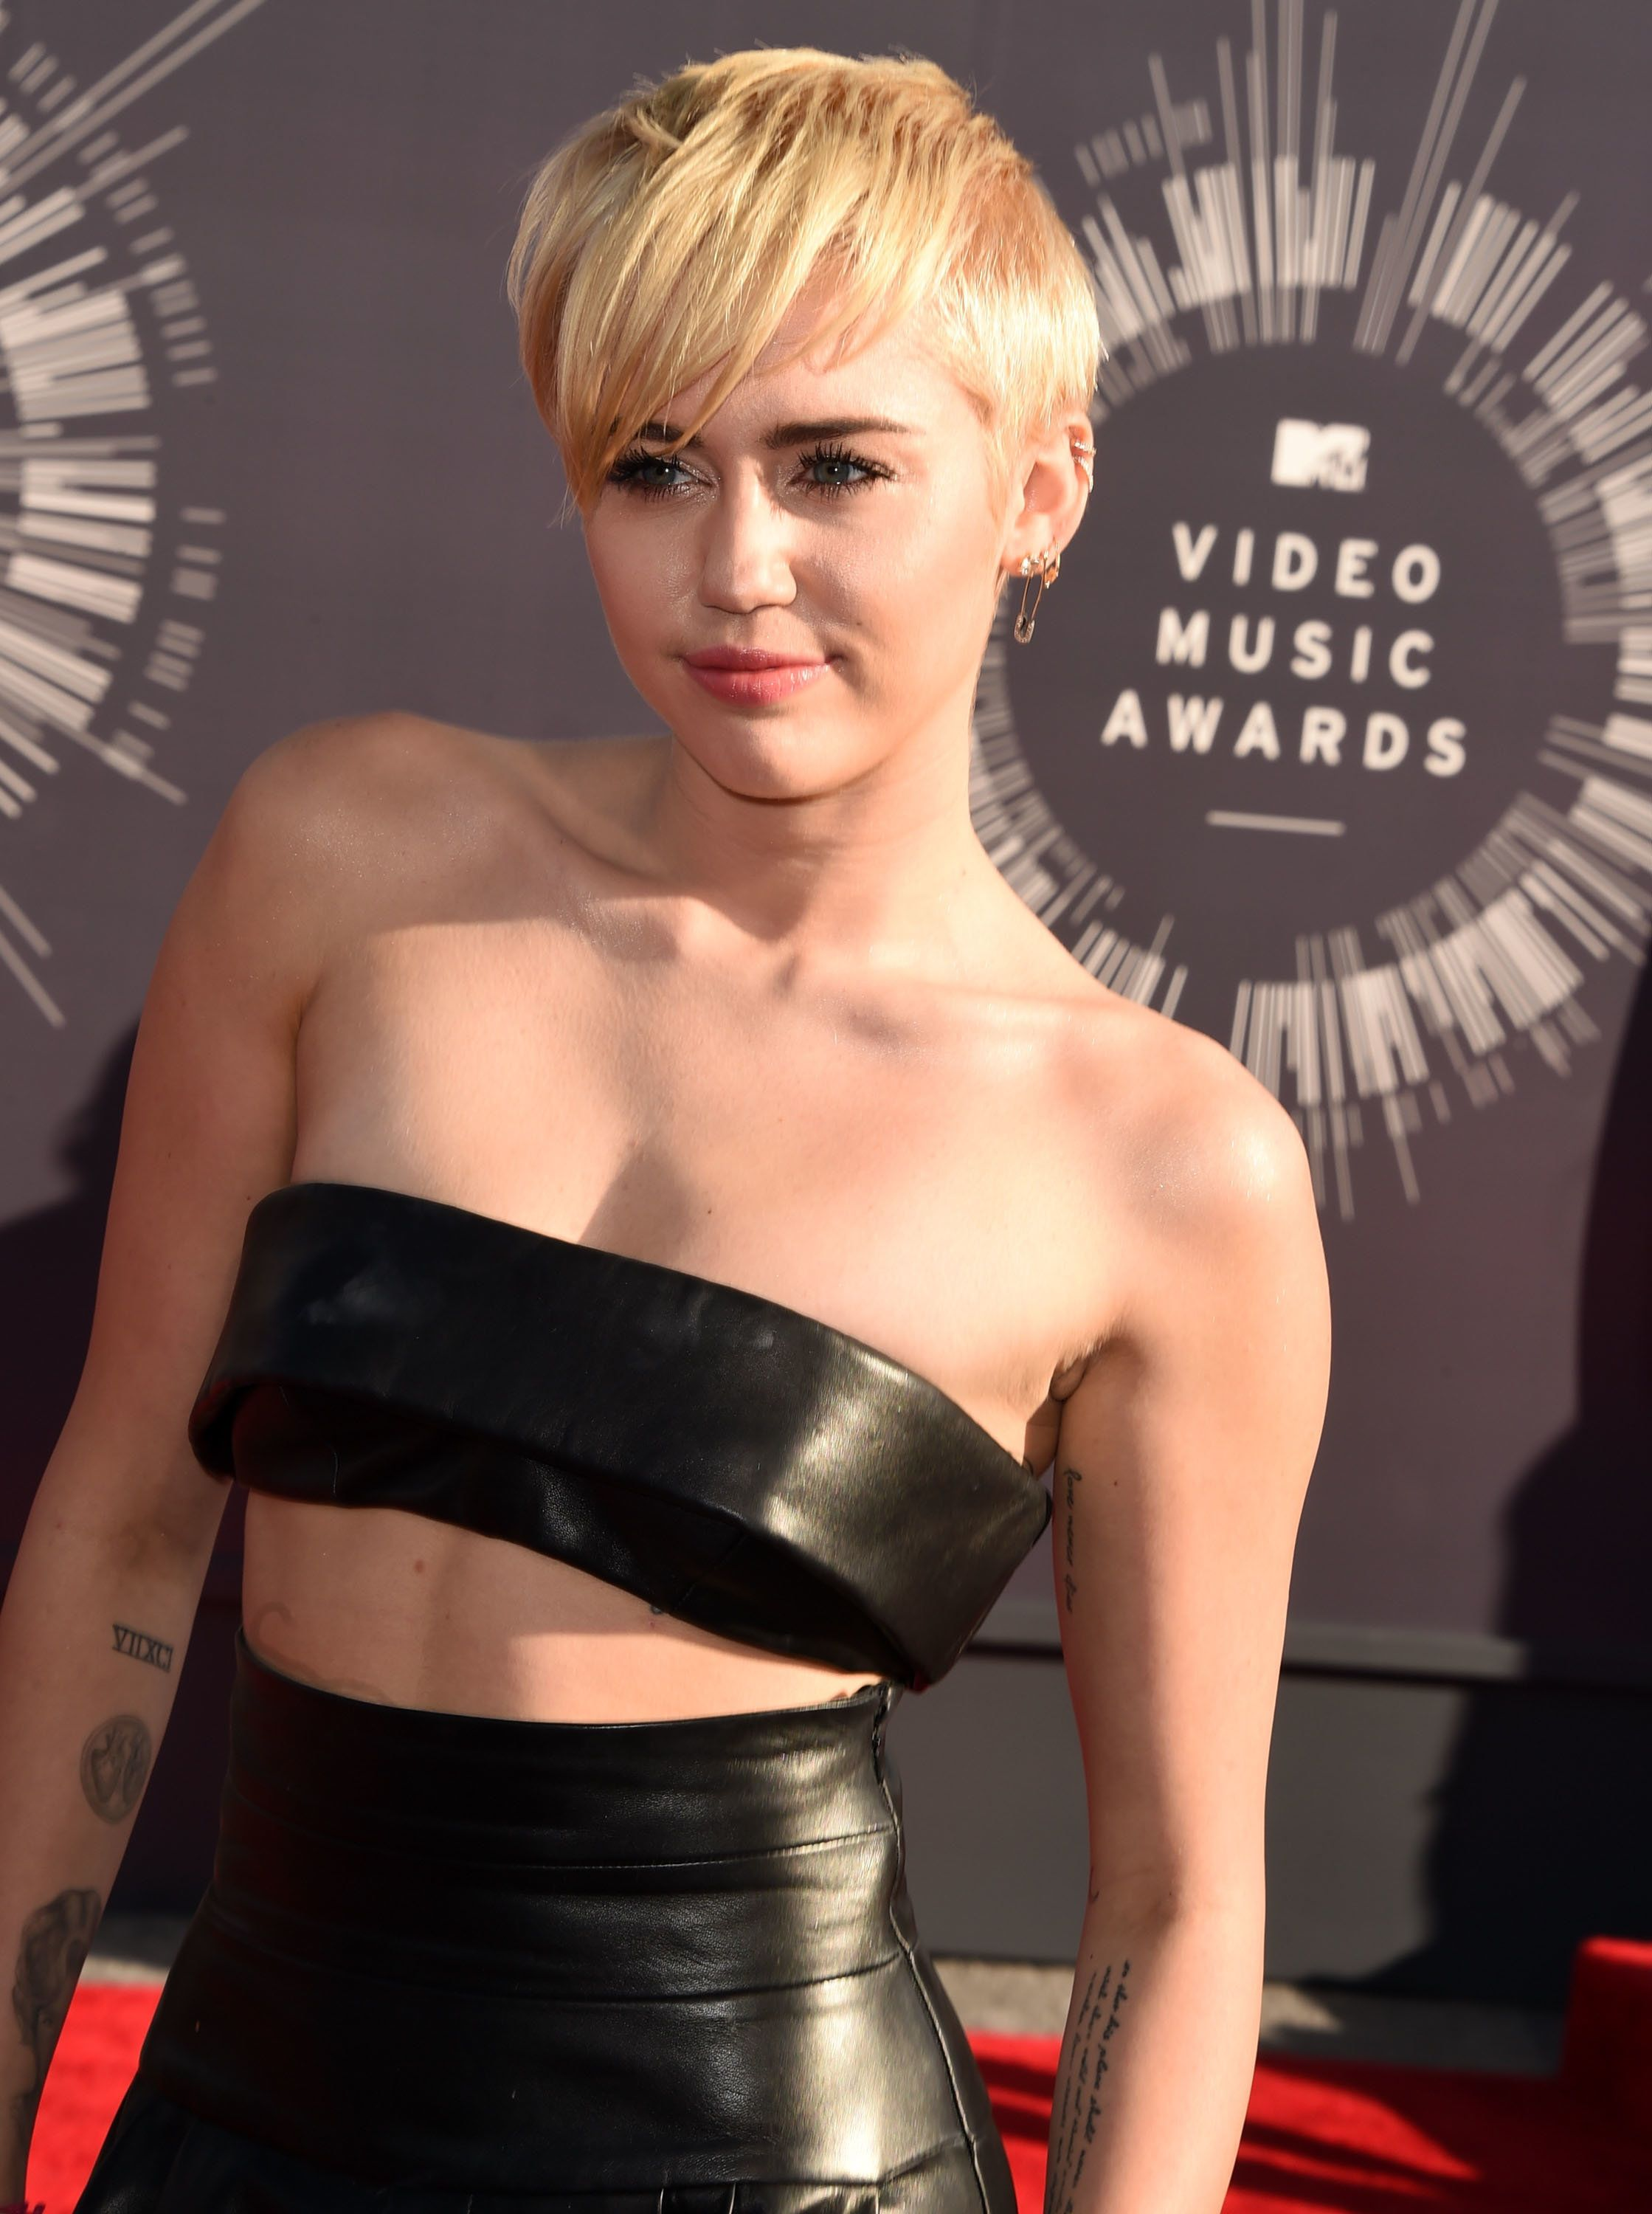 INGLEWOOD, CA - AUGUST 24:  Miley Cyrus arrives at the 2014 MTV Video Music Awards at The Forum on August 24, 2014 in Inglewood, California.  (Photo by Steve Granitz/WireImage)